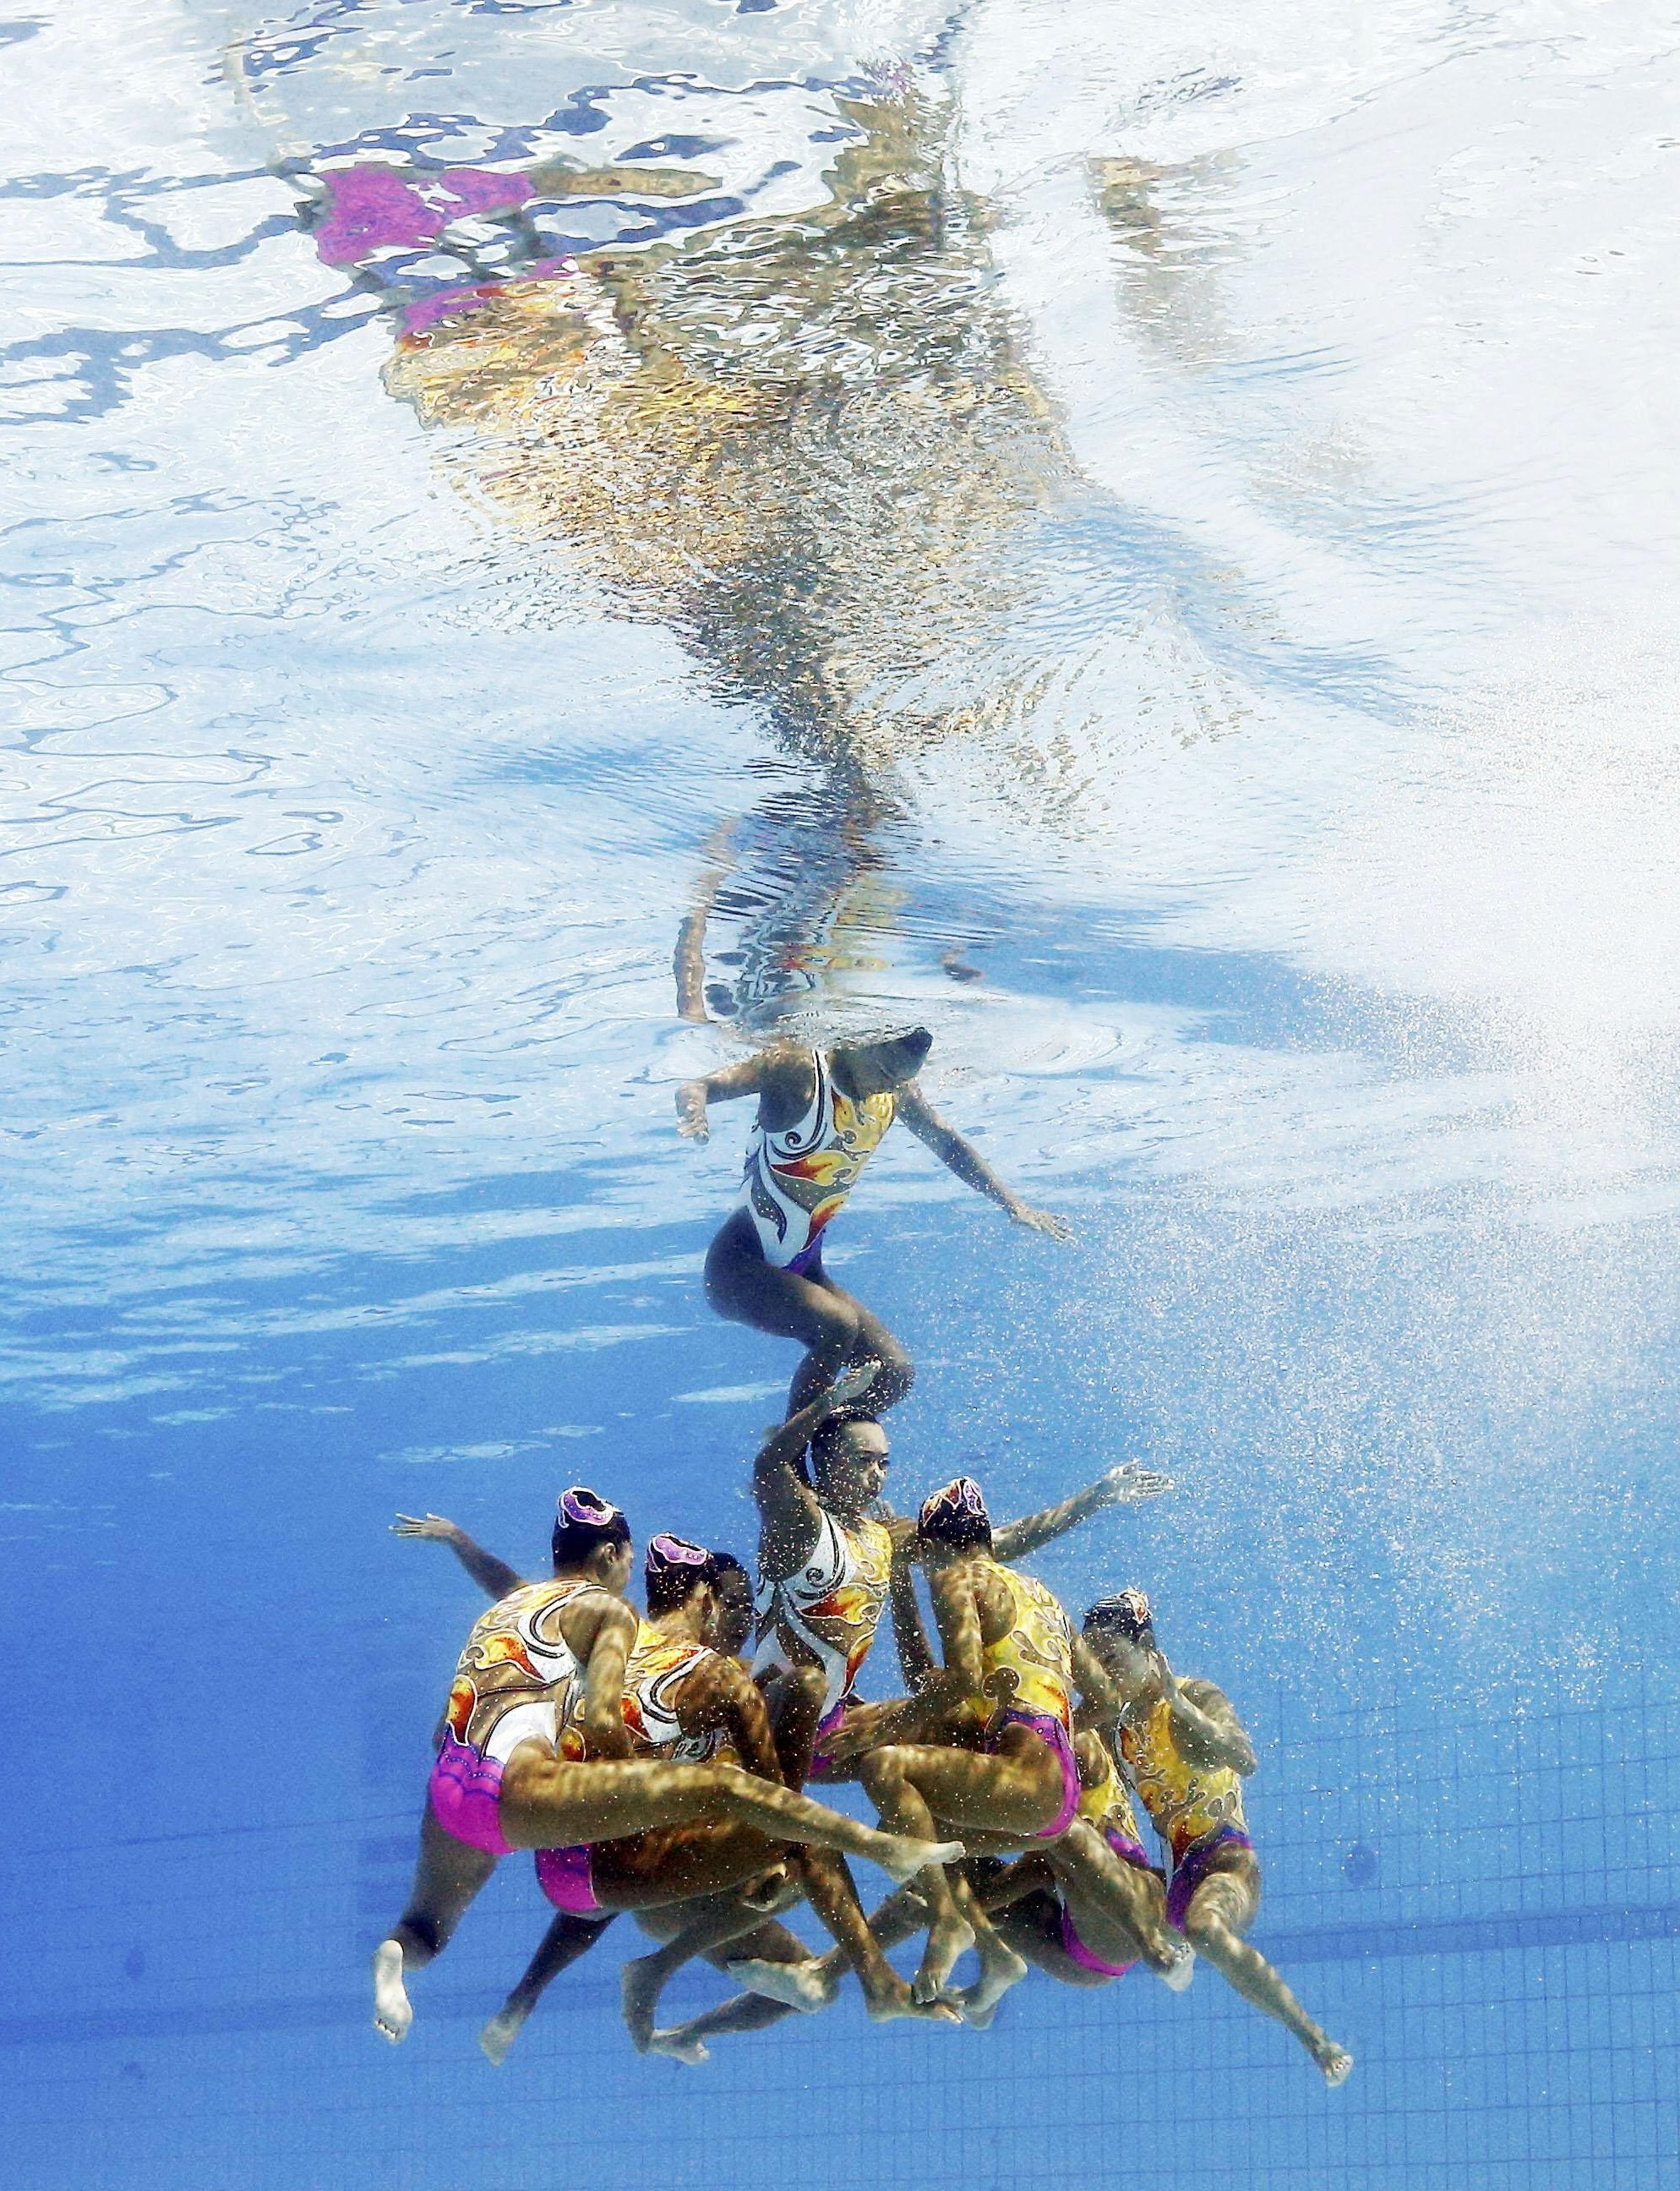 Japanese synchro swimmers perform during Friday's team competition at the Rio Games. They captured the bronze medal. | KYODO VIA REUTERS